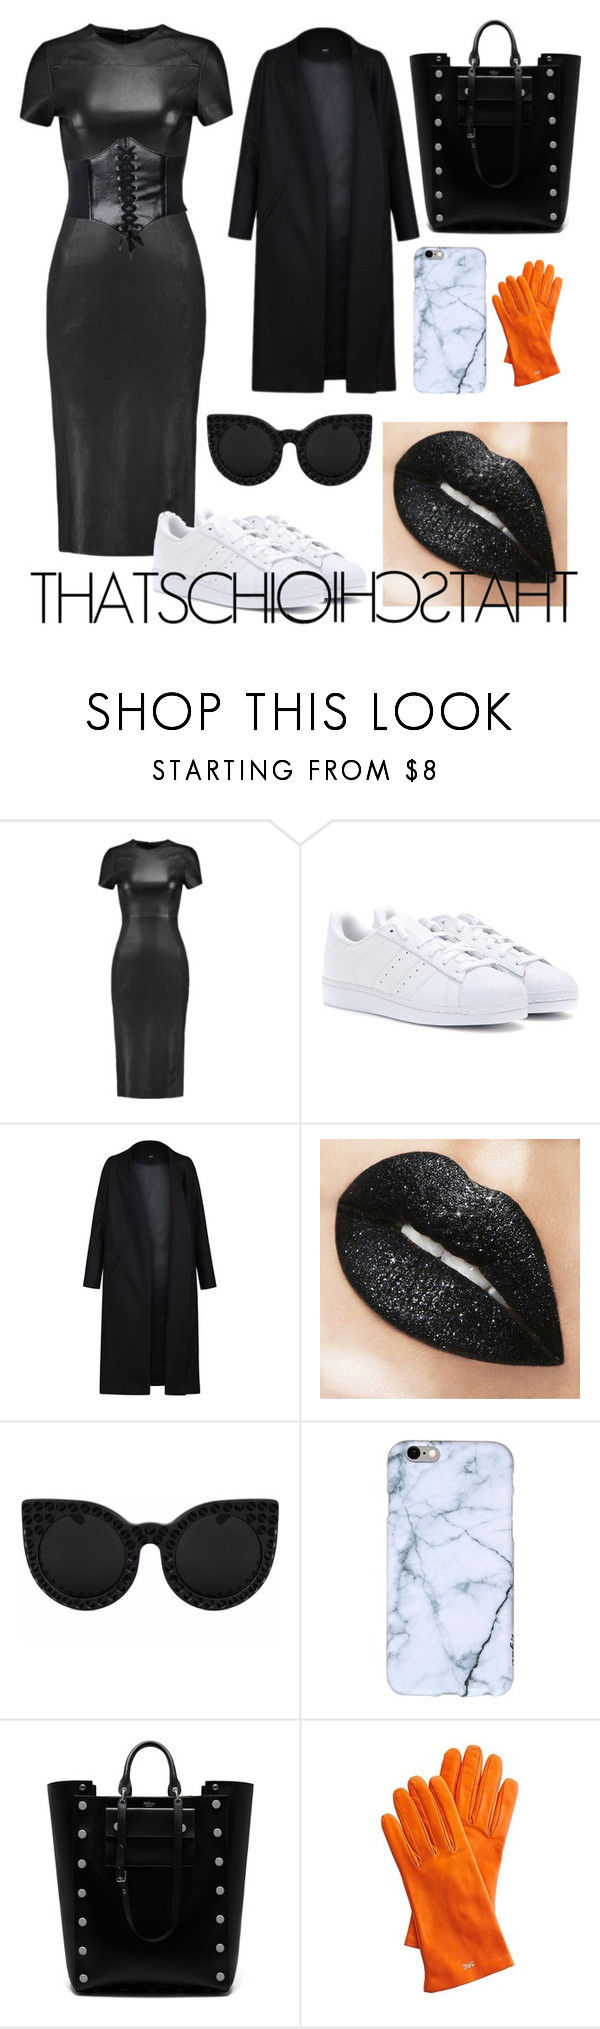 """""""#cozy#chic absolutely sexy"""" by mulababe ❤ liked on Polyvore featuring Iris & Ink, adidas, Non, Delalle, Mulberry and Mark & Graham"""